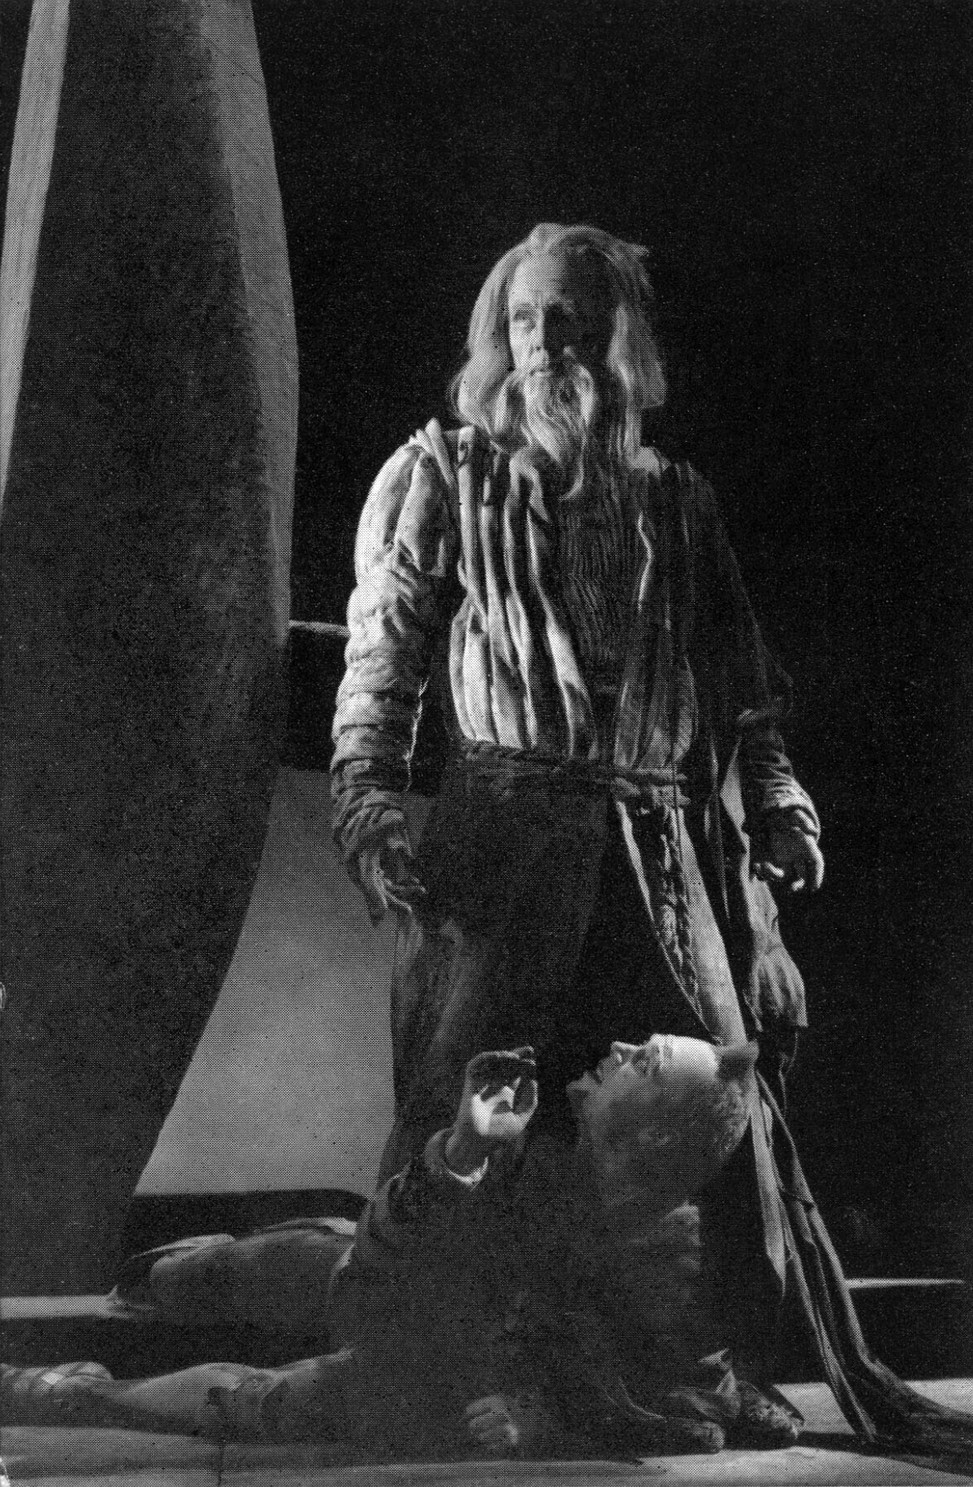 Michael Redgrave as King Lear and Marius Goring as Fool in Shakespeare's King Lear at The Shakespeare Memorial Theatre, Stratford 1953